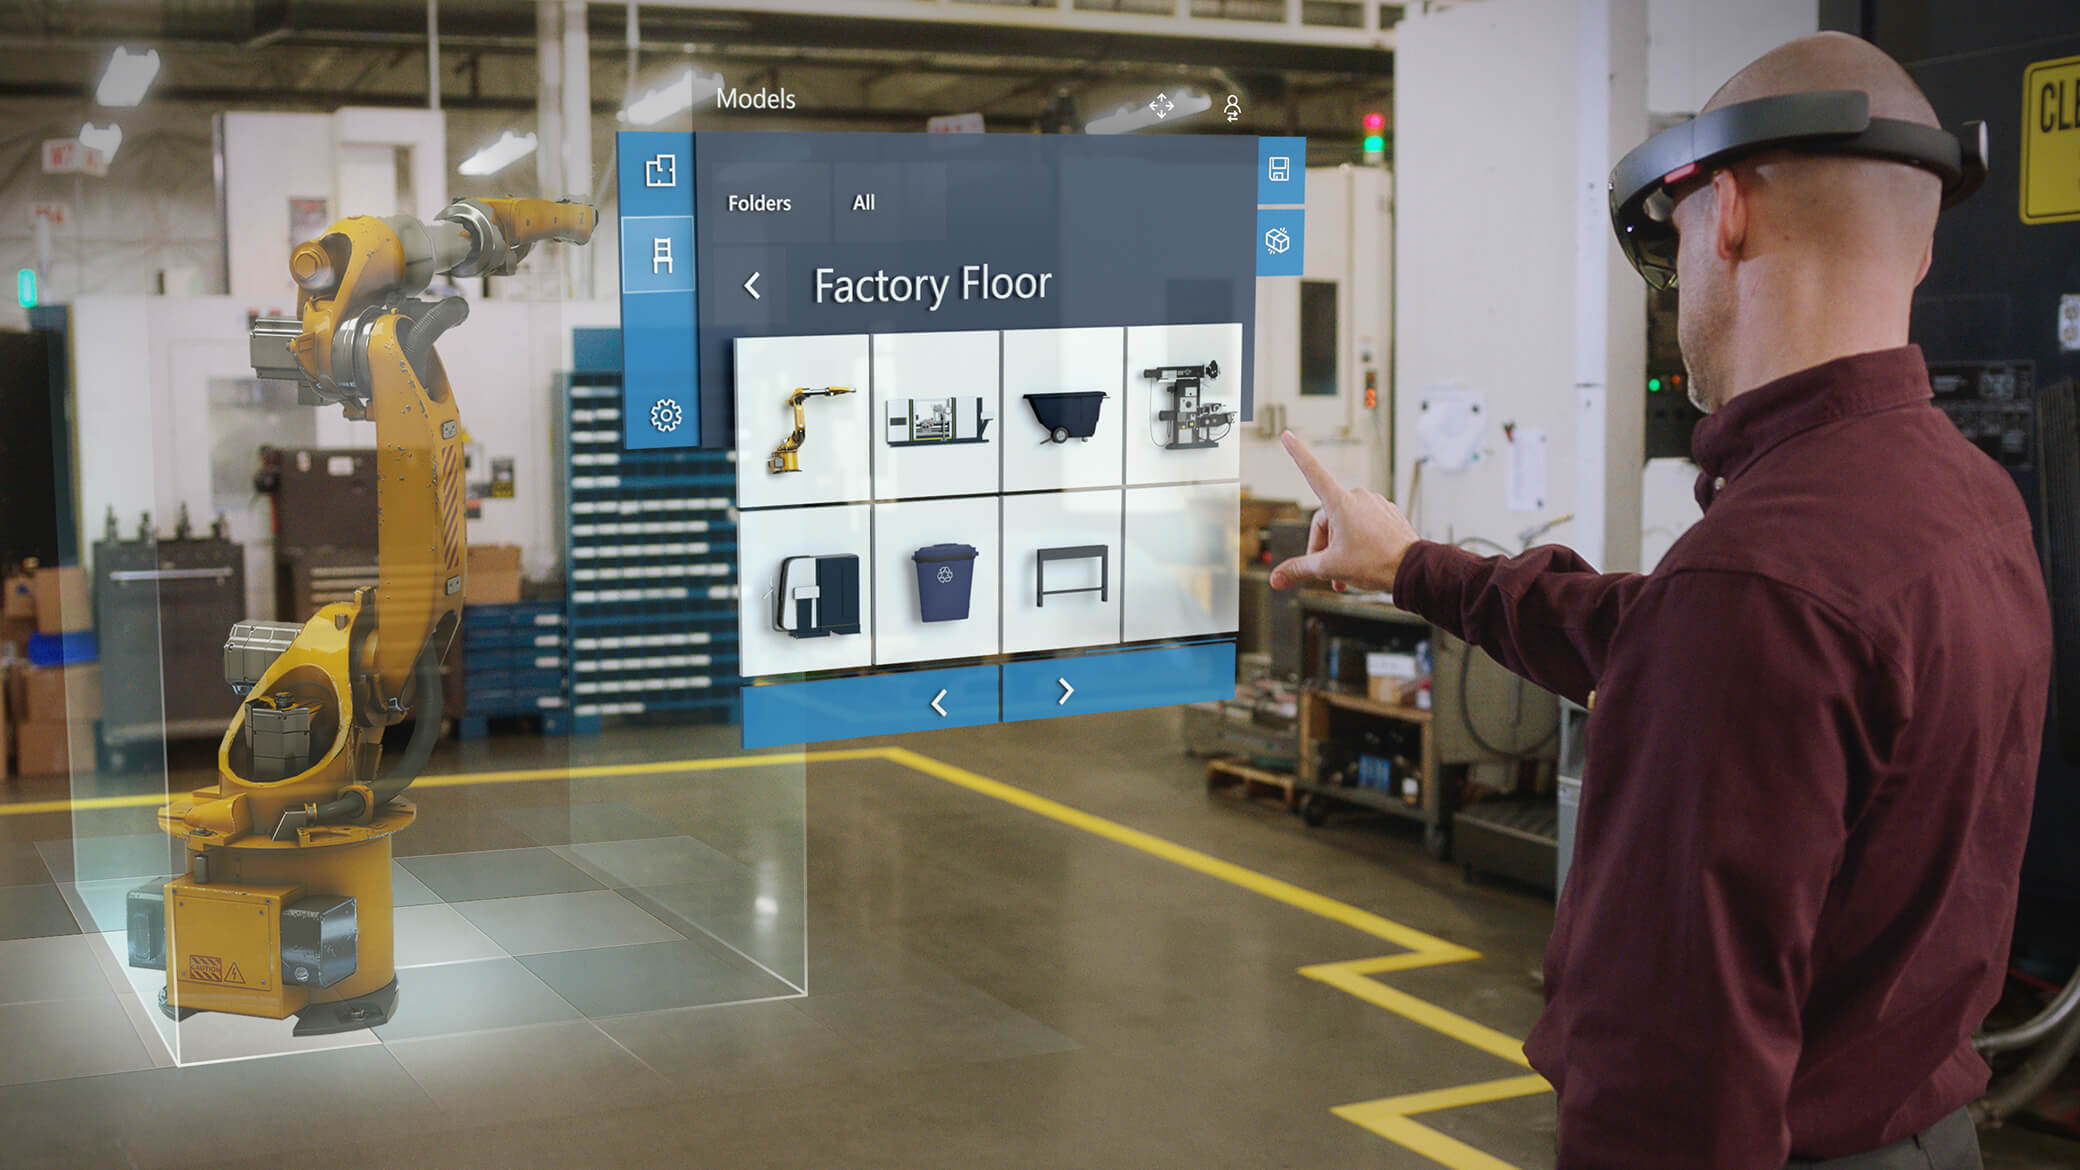 6953b54e0c7 Microsoft Tipped to Reveal Hololens 2 At MWC 2019 - SmartHouse